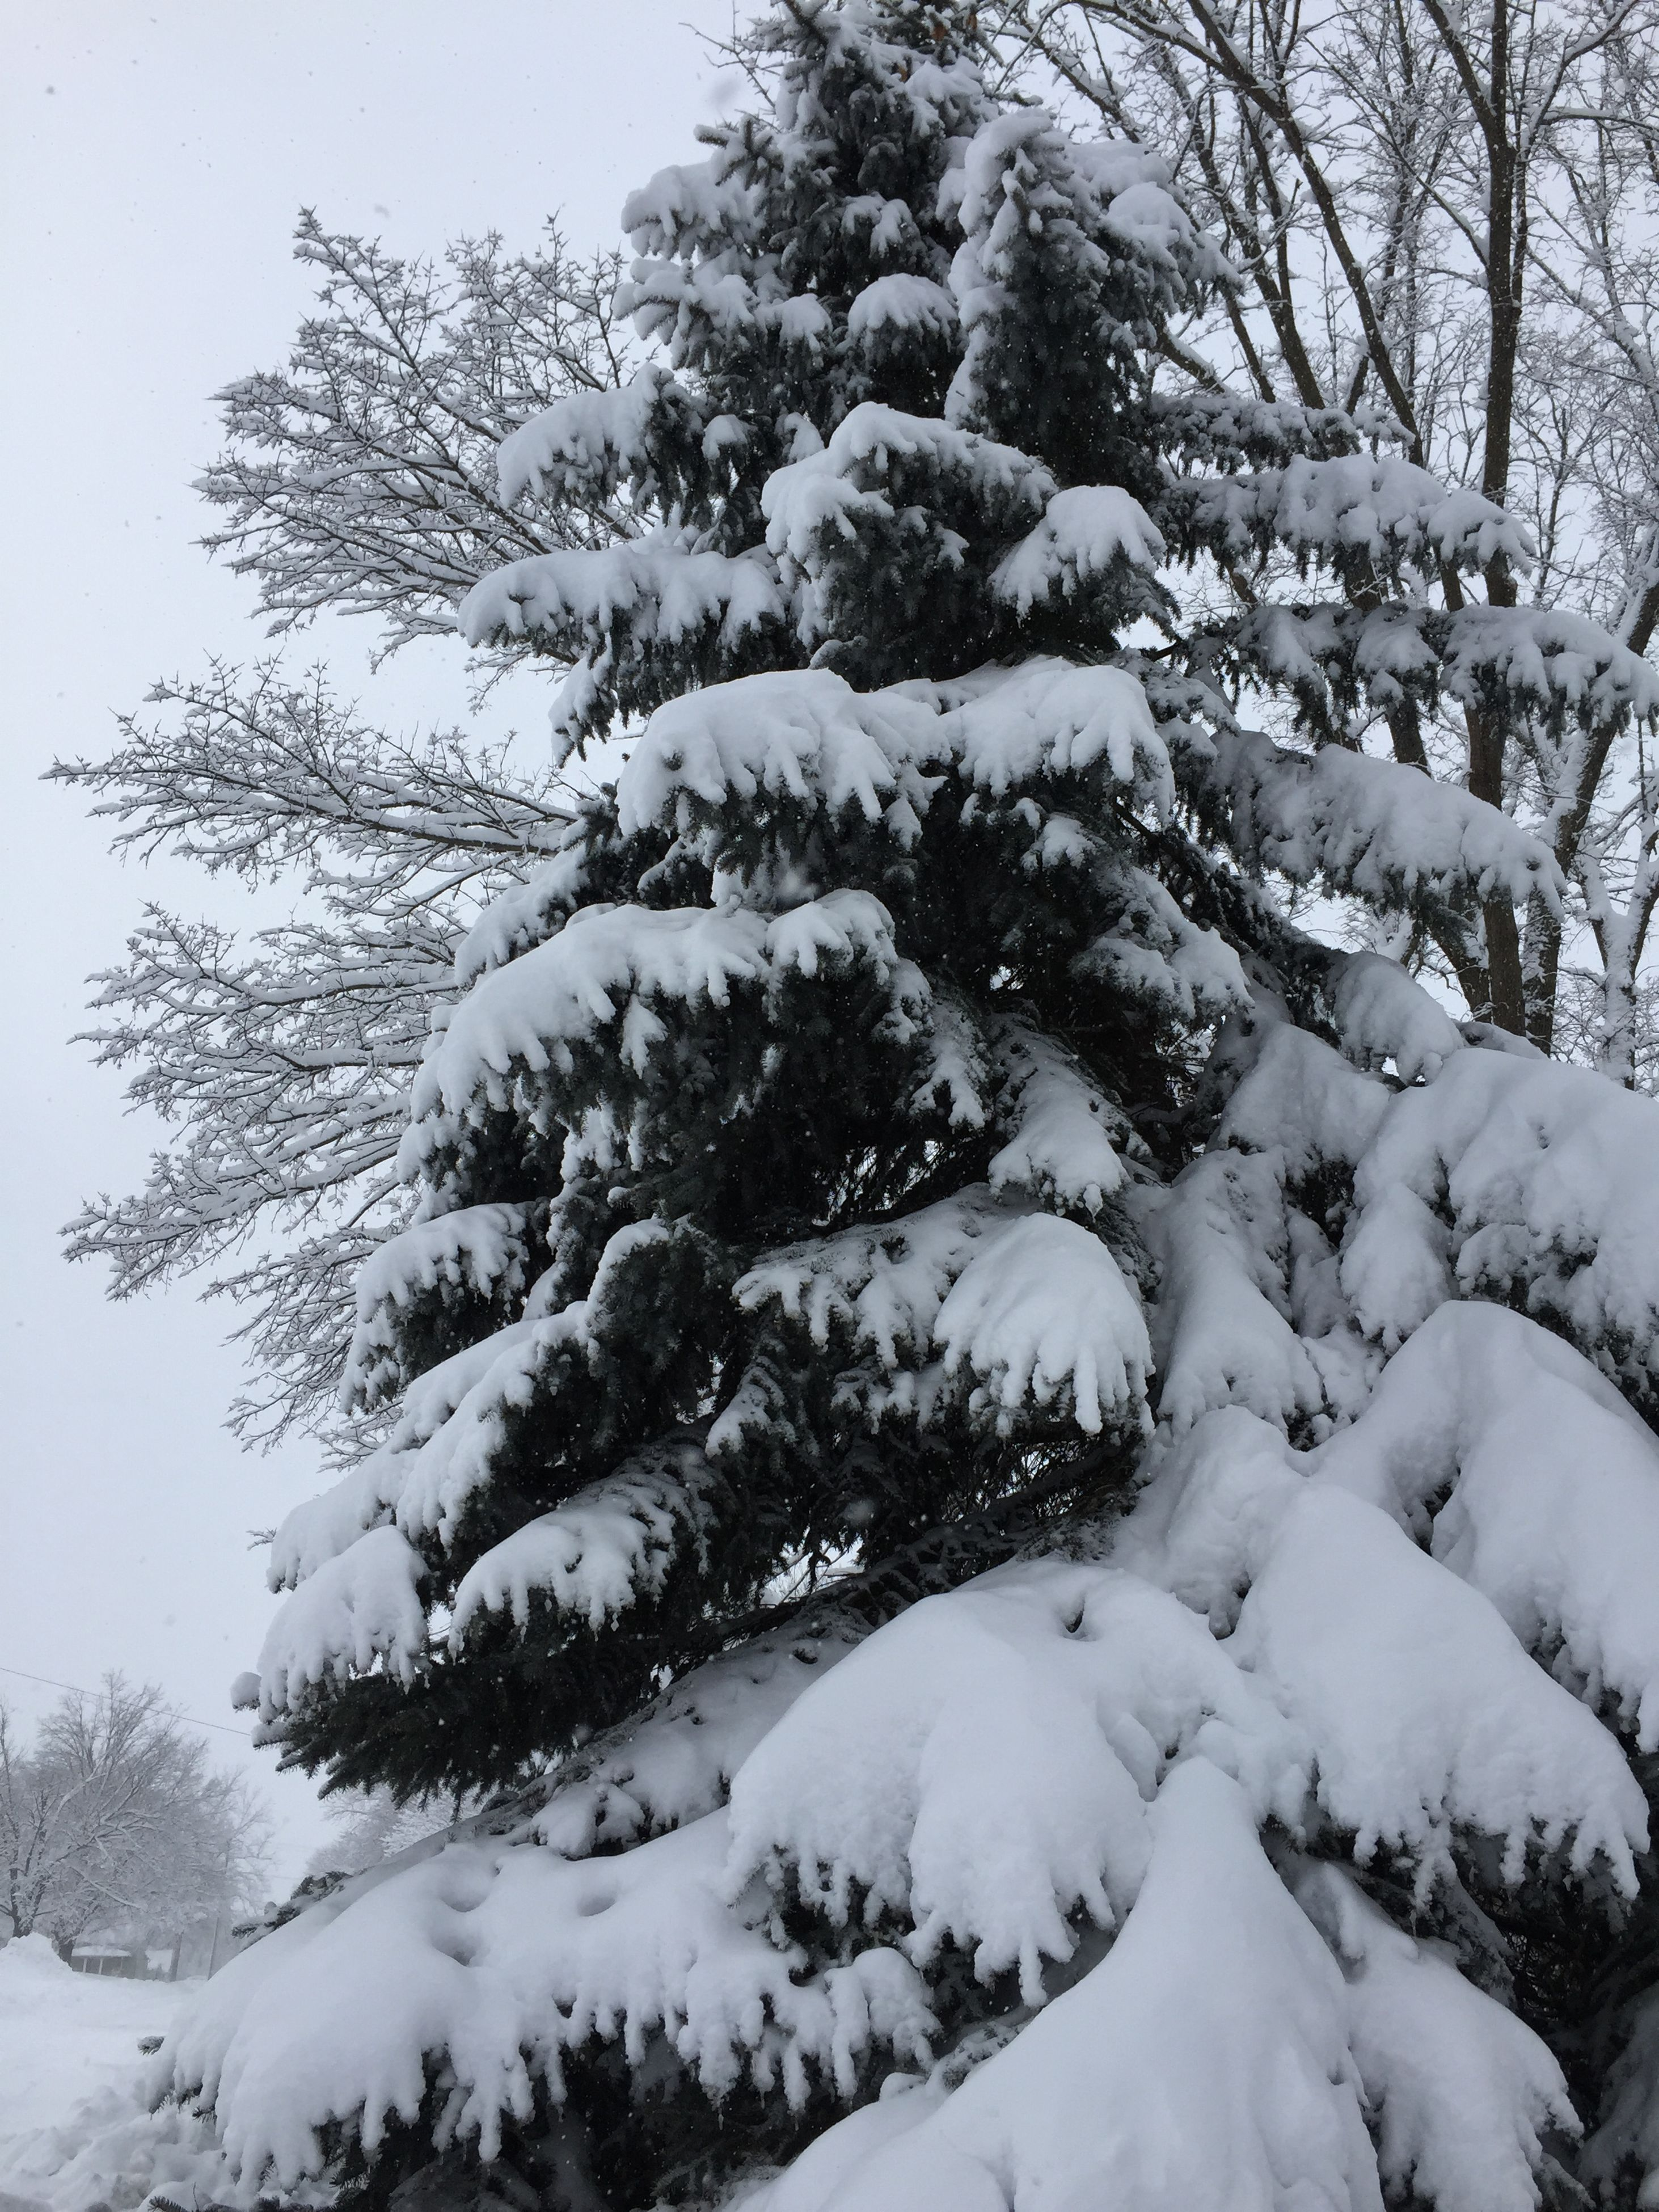 winter, snow, cold temperature, season, tree, weather, frozen, tranquility, nature, branch, beauty in nature, covering, tranquil scene, white color, scenics, growth, day, outdoors, bare tree, low angle view